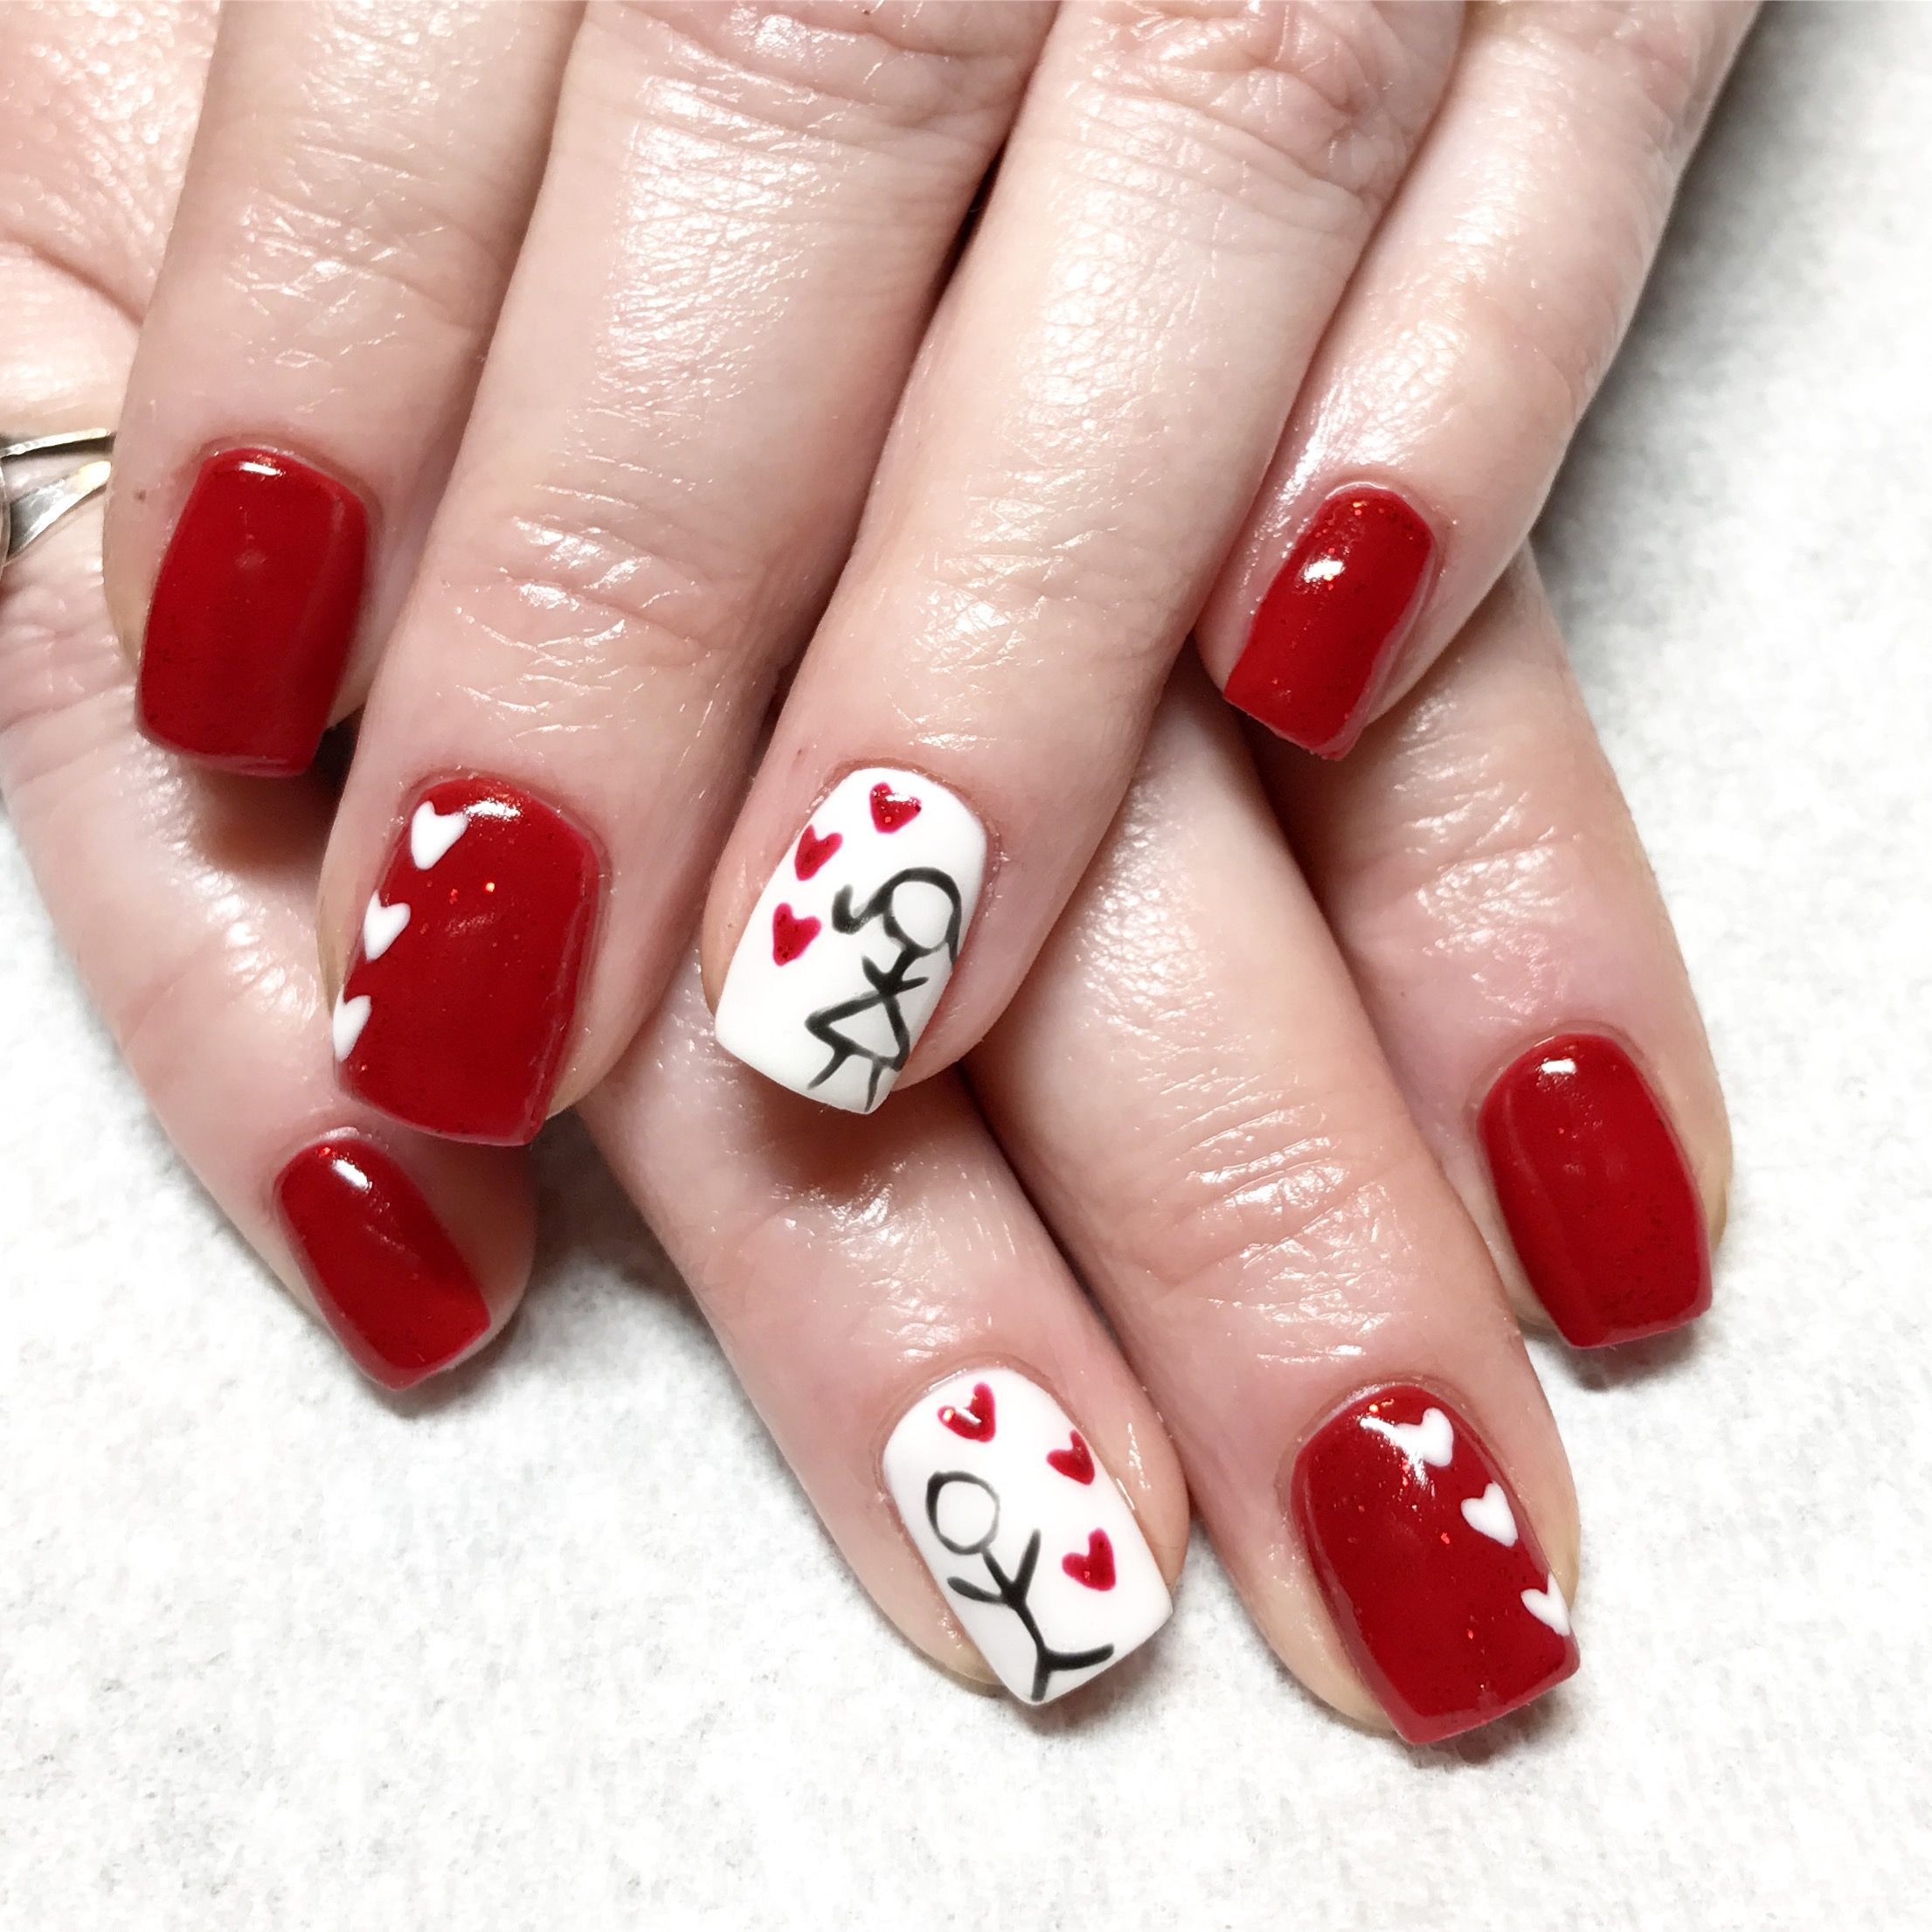 Hand Painted Nail Art Designs: Valentine Nails. Gel Nails. Red Nails. Heart Nails. Hand